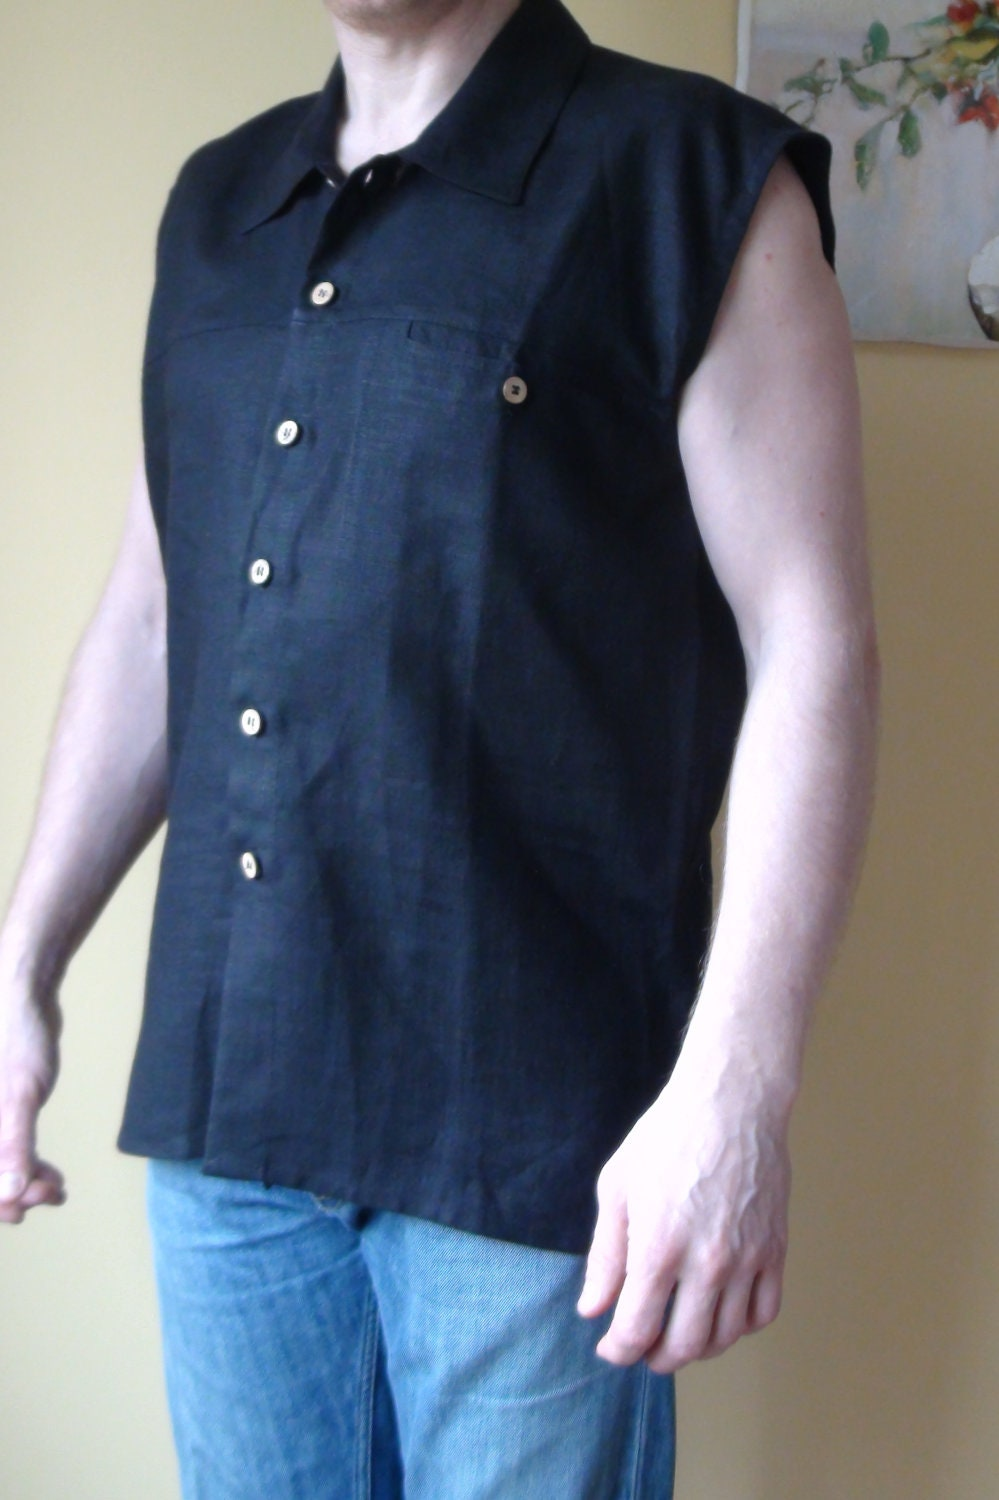 A sleeveless shirt is a shirt manufactured without sleeves, or whose sleeves have been cut off. Sleeveless shirts are worn by people of any gender, depending on .